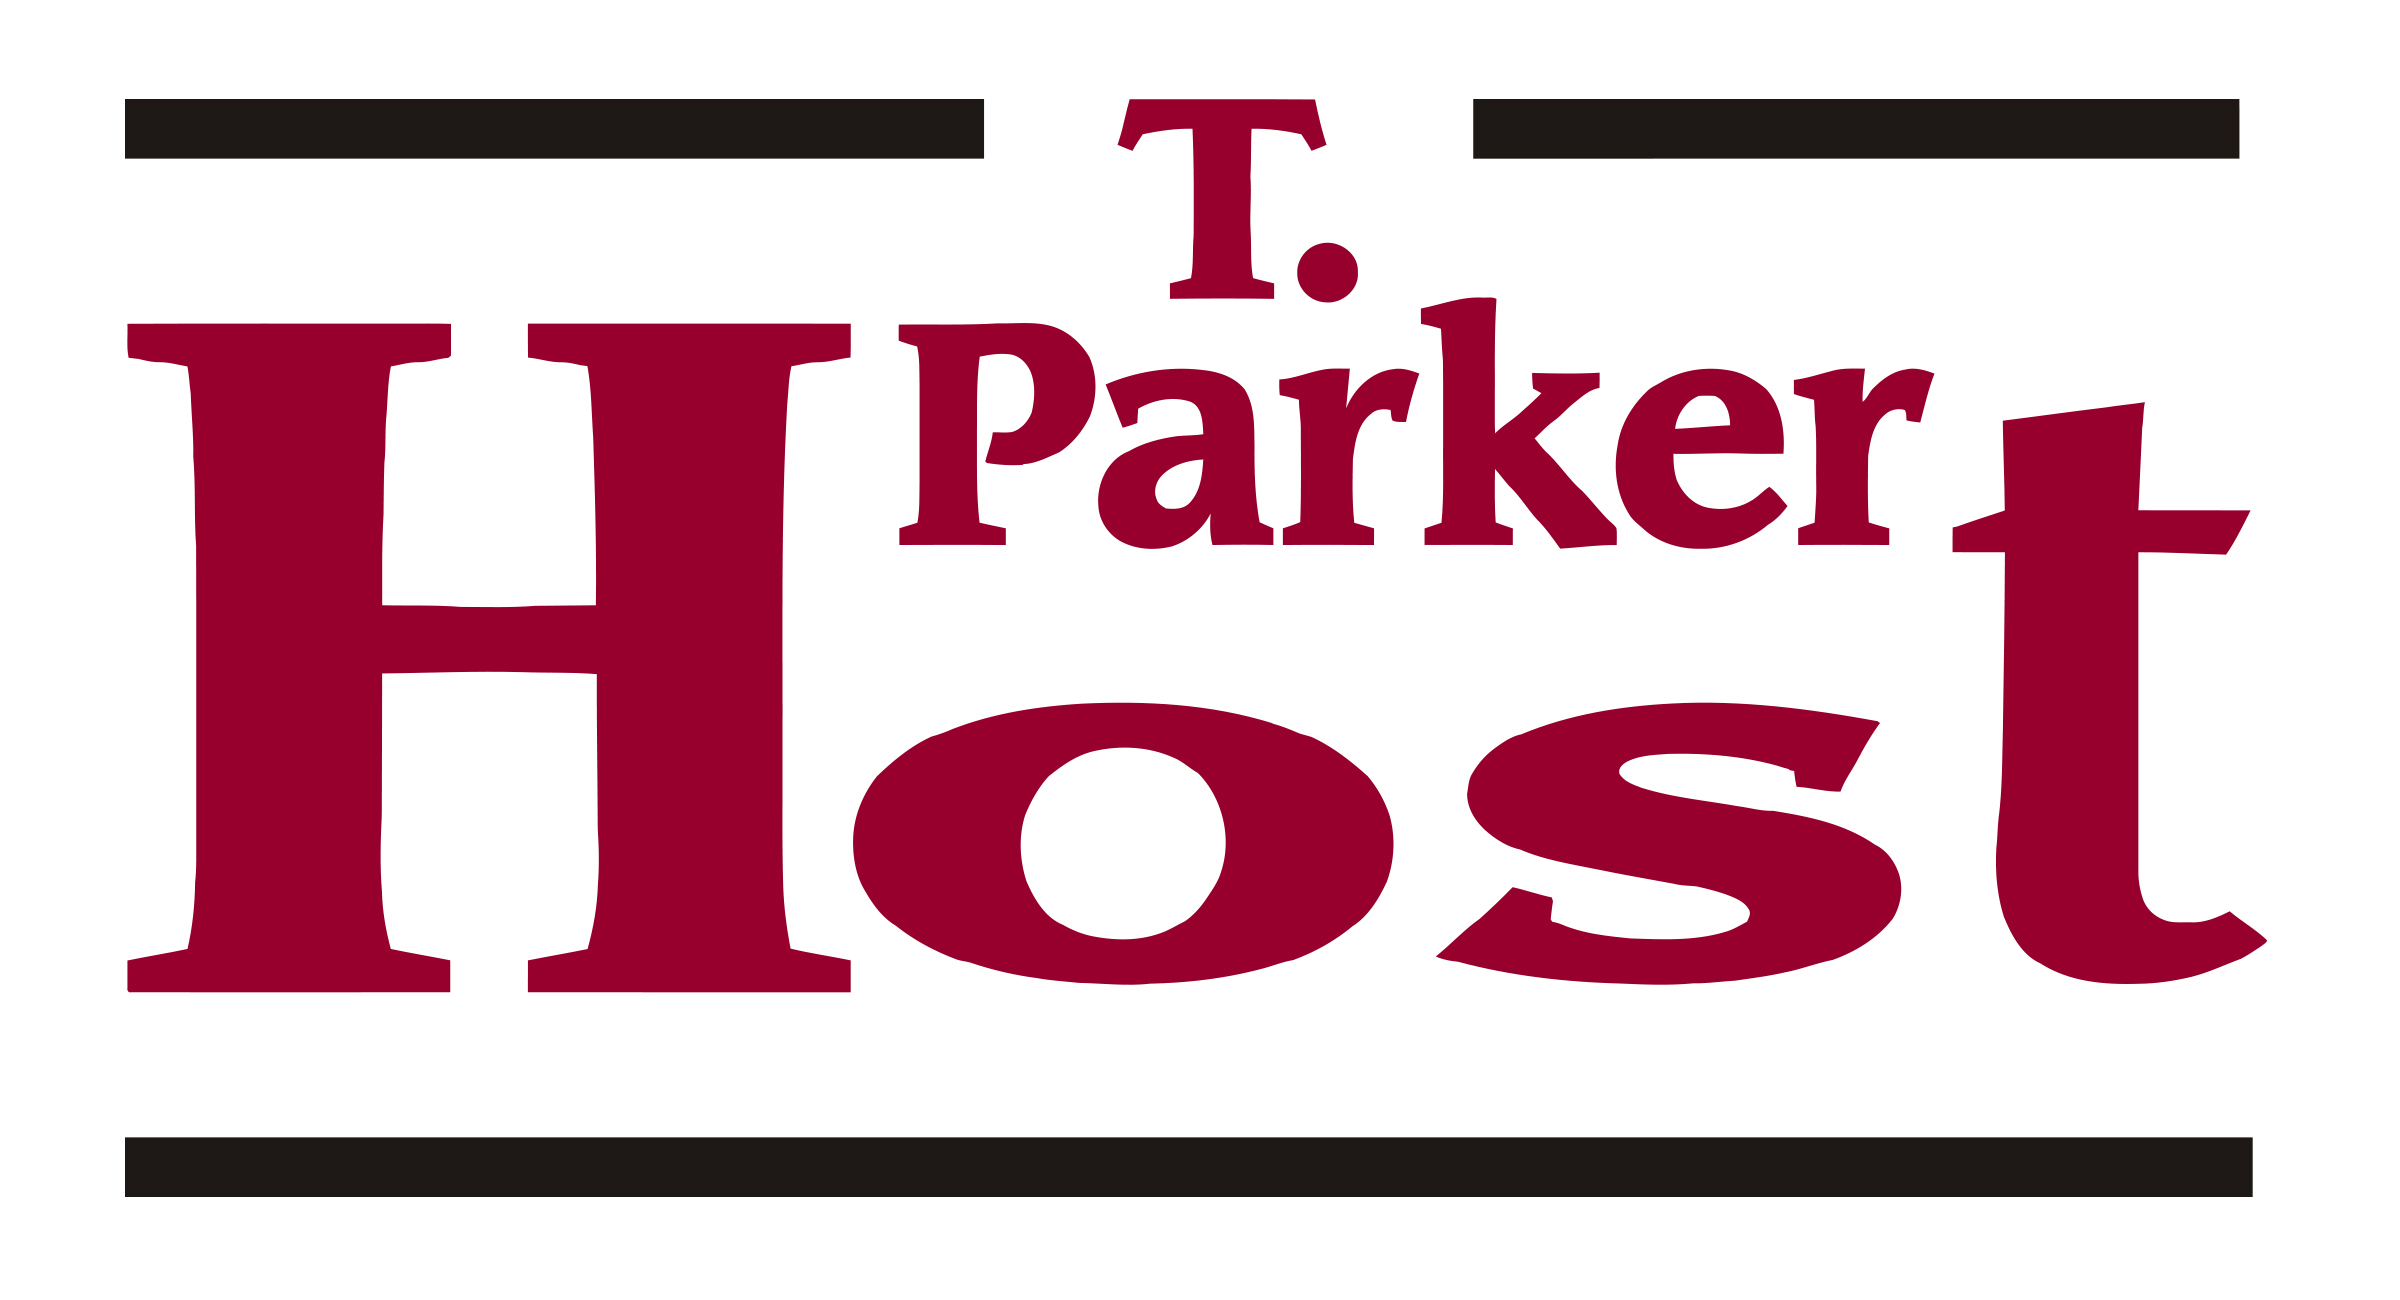 T. PARKER HOST, INC. ANNOUNCES TWO NEW VP OF OPERATIONS